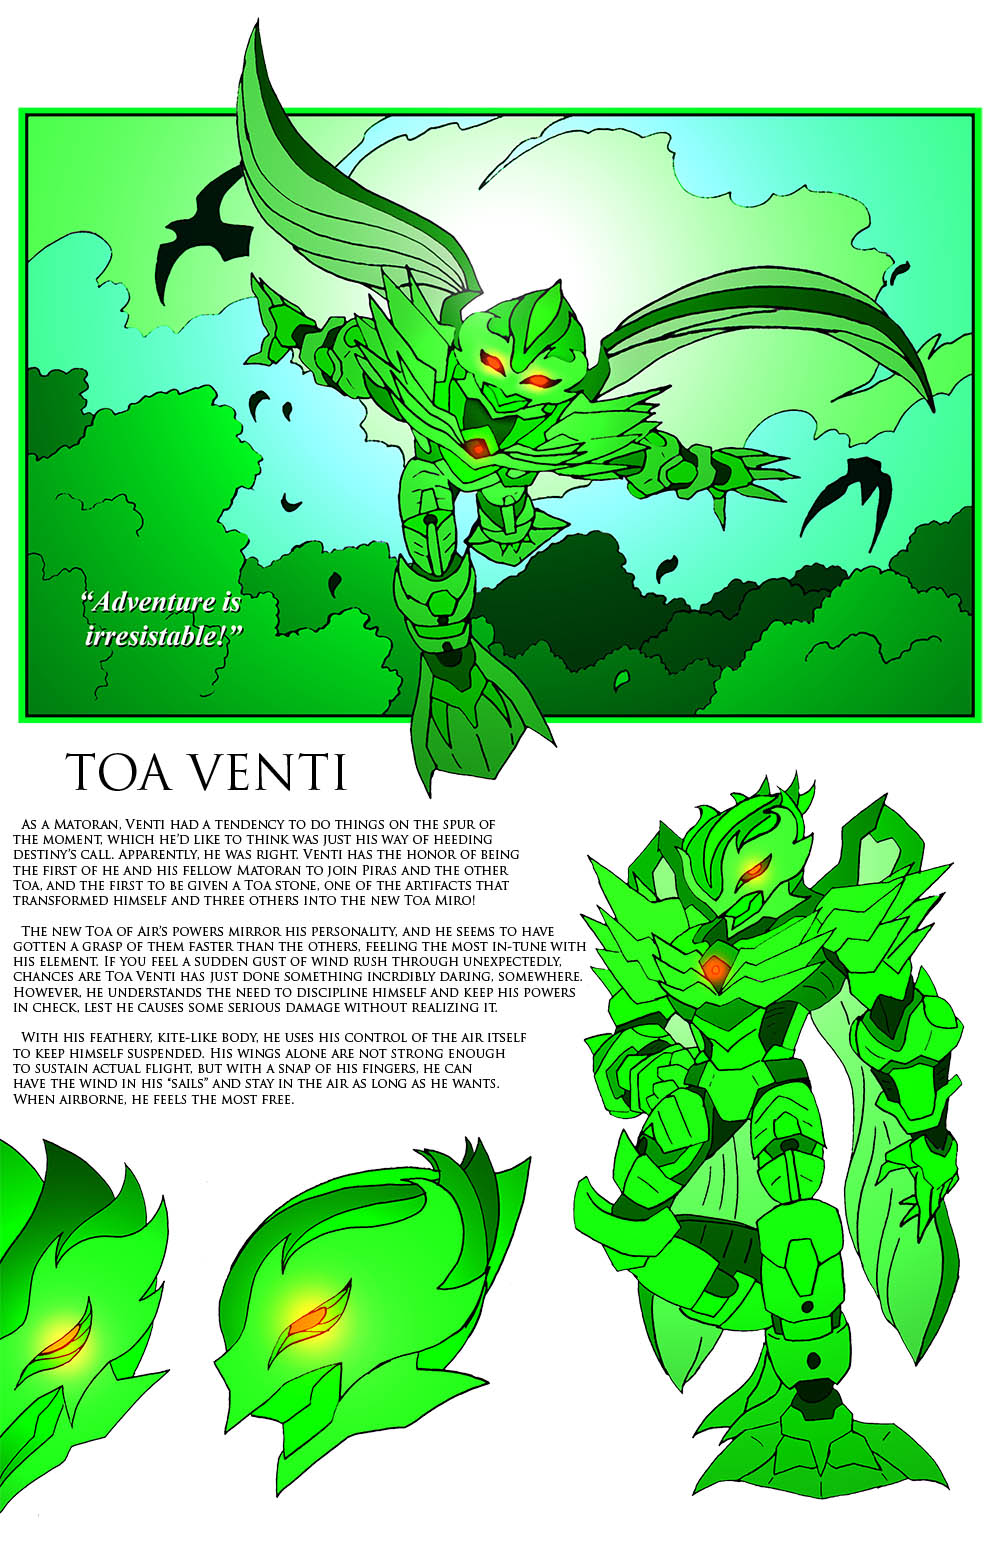 toa_venti_bio_by_nickinamerica-d77oogu.j